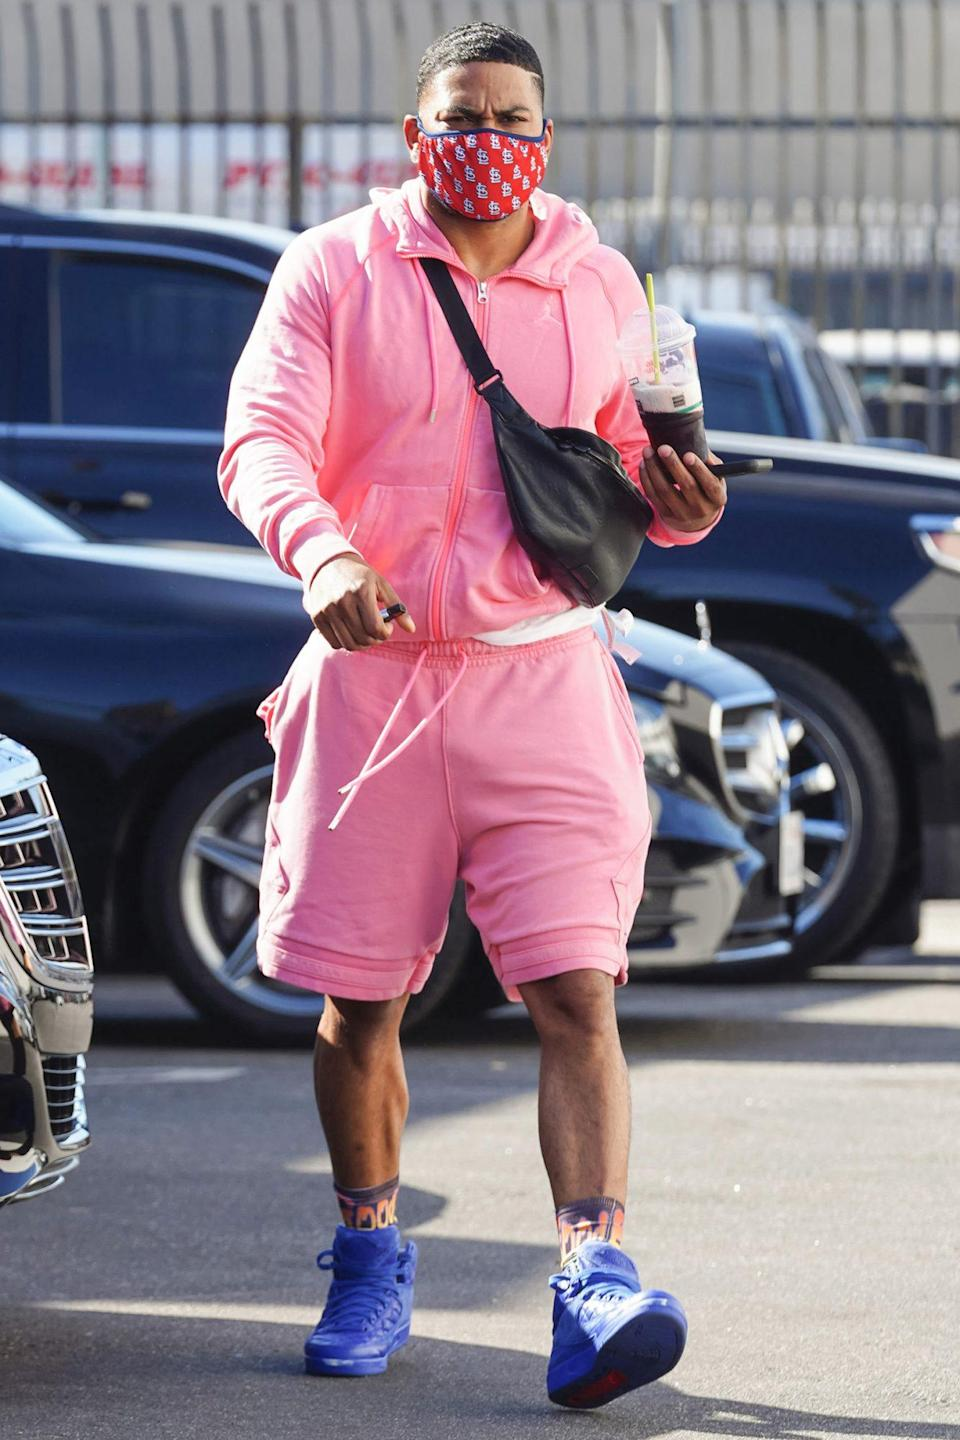 <p>Nelly arrives at the<i> Dancing with the Stars </i>rehearsal studio in a pink sweatsuit and purple sneakers on Wednesday in L.A. </p>